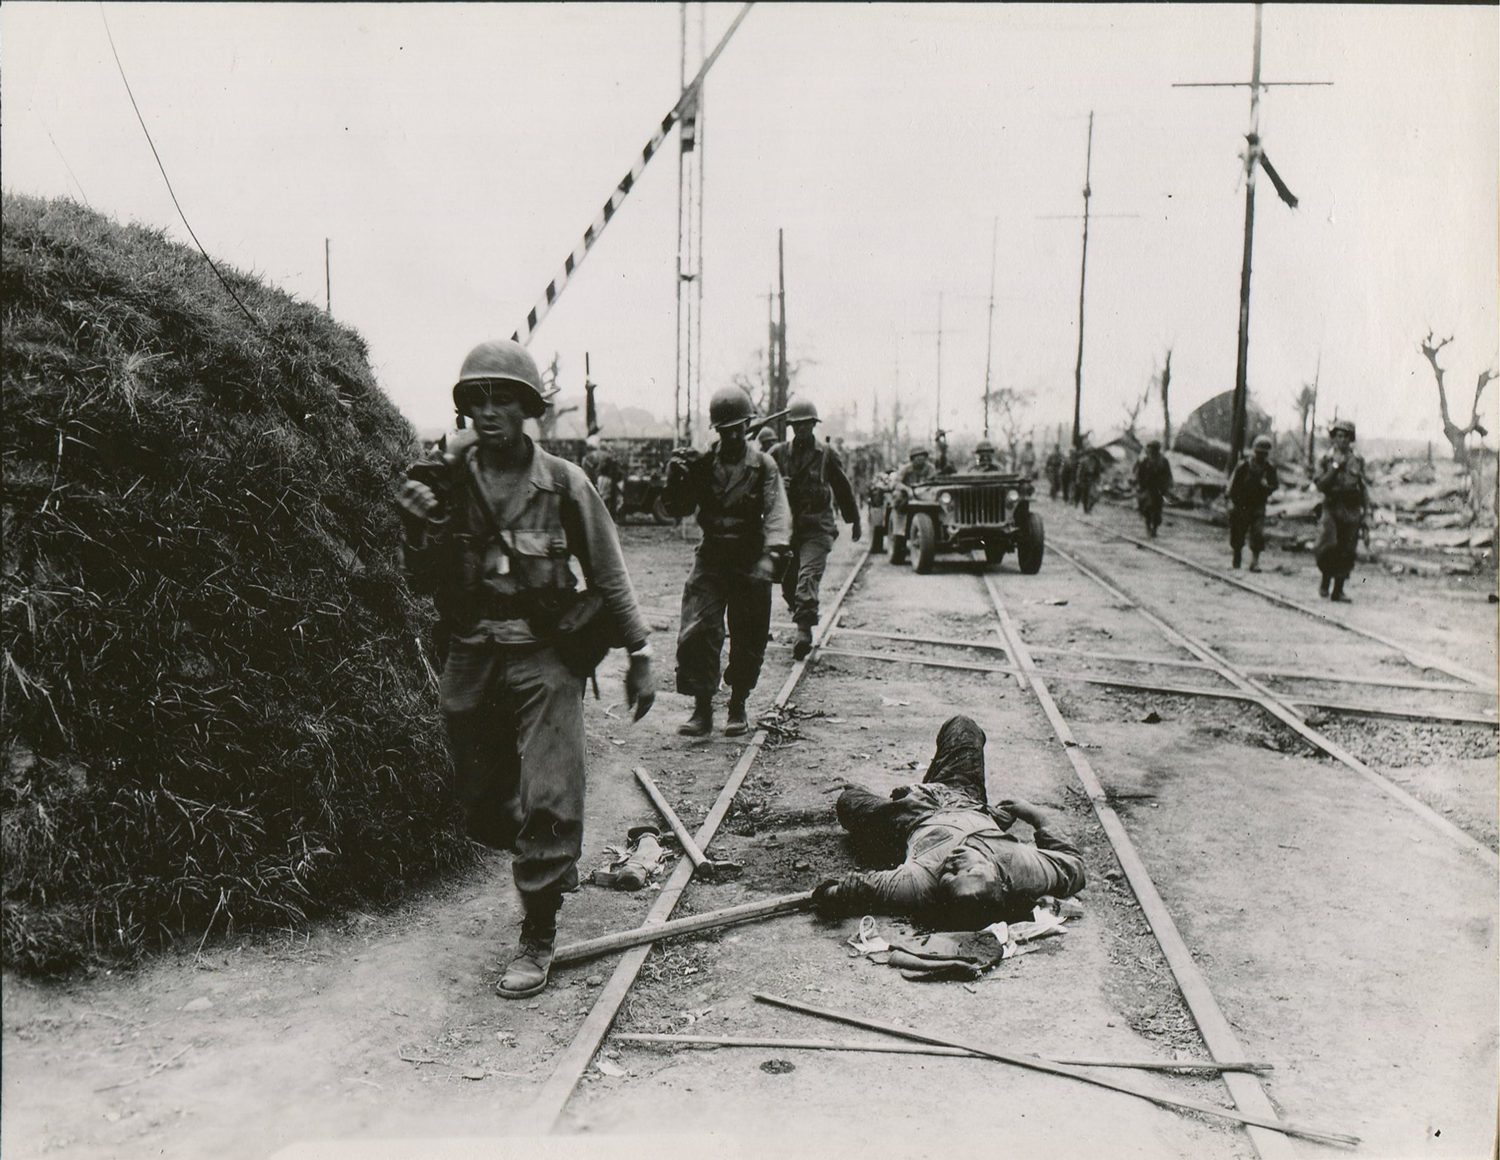 Troops with the First Cavalry Division advance past a dead Japanese soldier sprawled out in the street in the district of Paco on February 12, 1945. (National Archives)